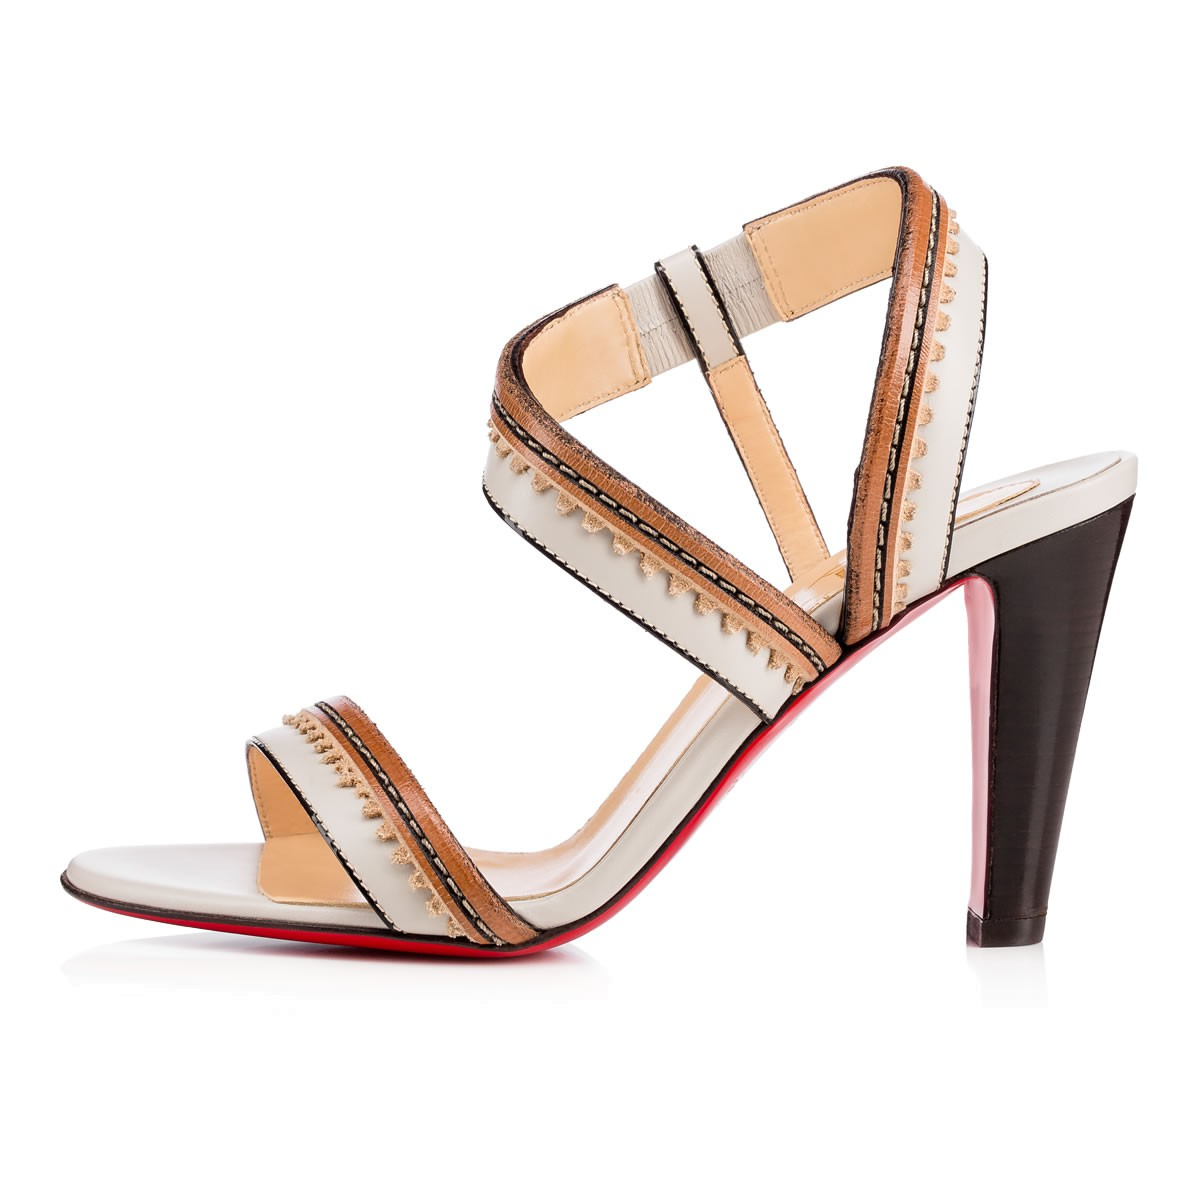 replica christian louboutin mens shoes - Christian louboutin Trepi City Striped Leather Sandals in ...